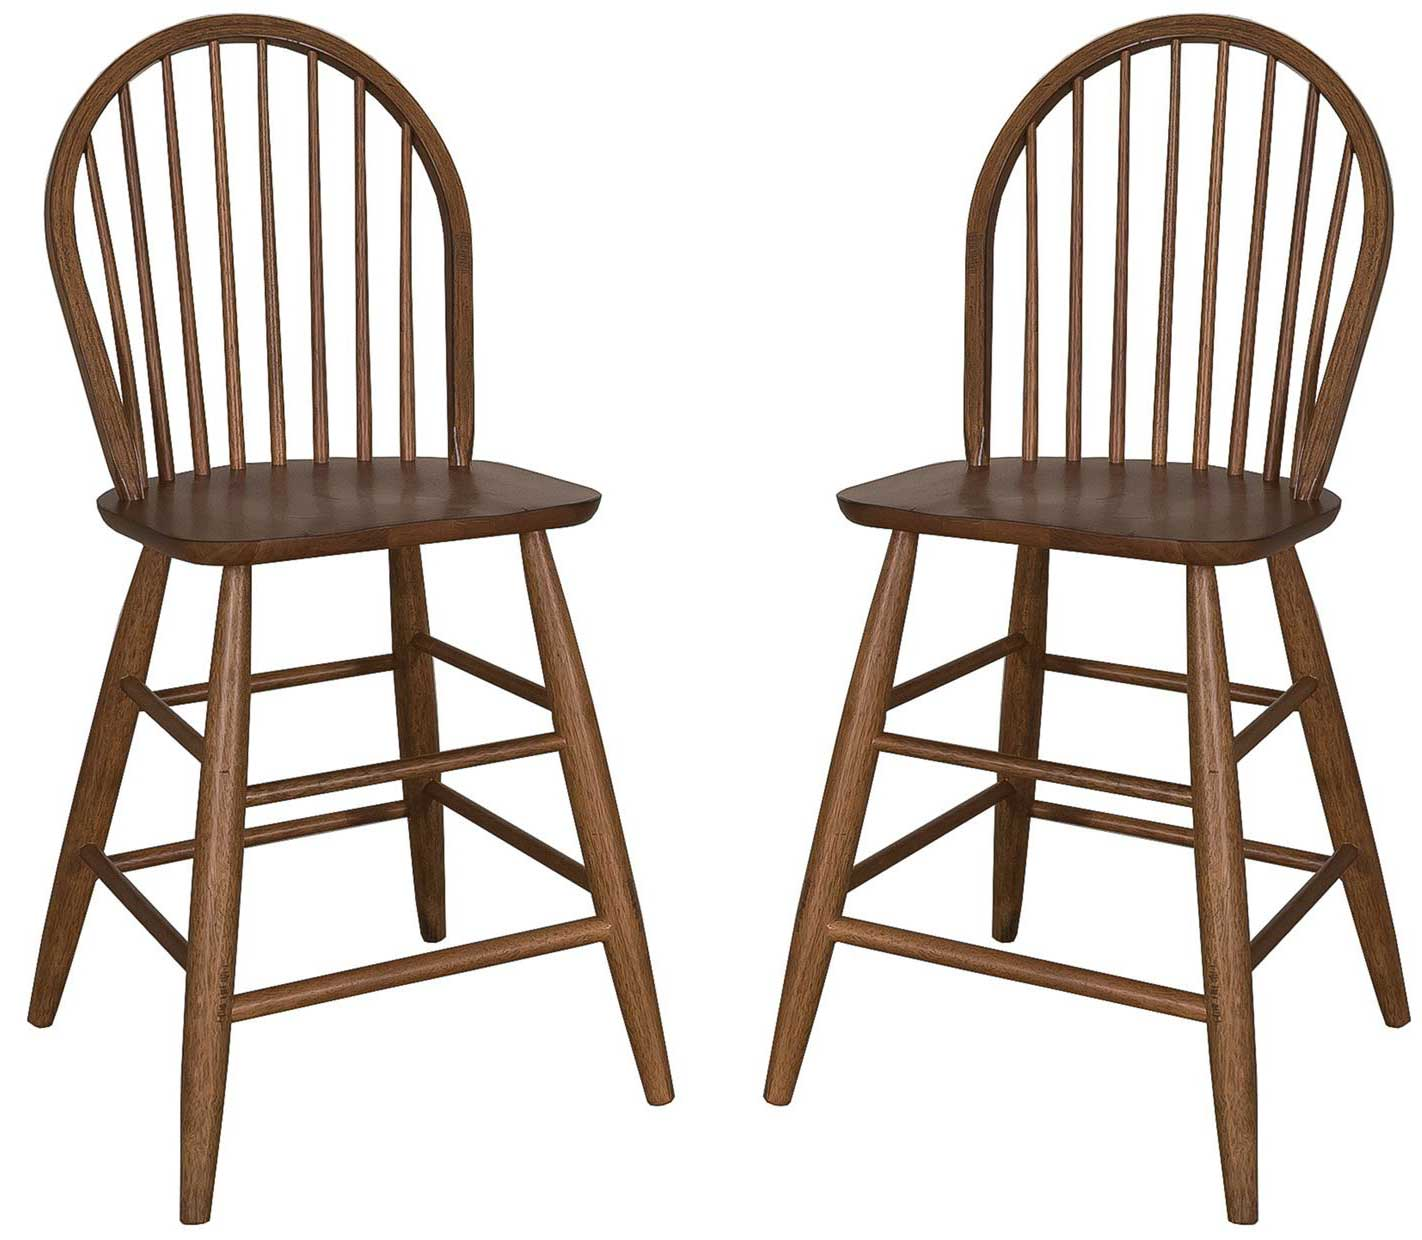 Pair of oak cabin fever windsor back counter height pub chairs stools - Windsor back counter stools ...